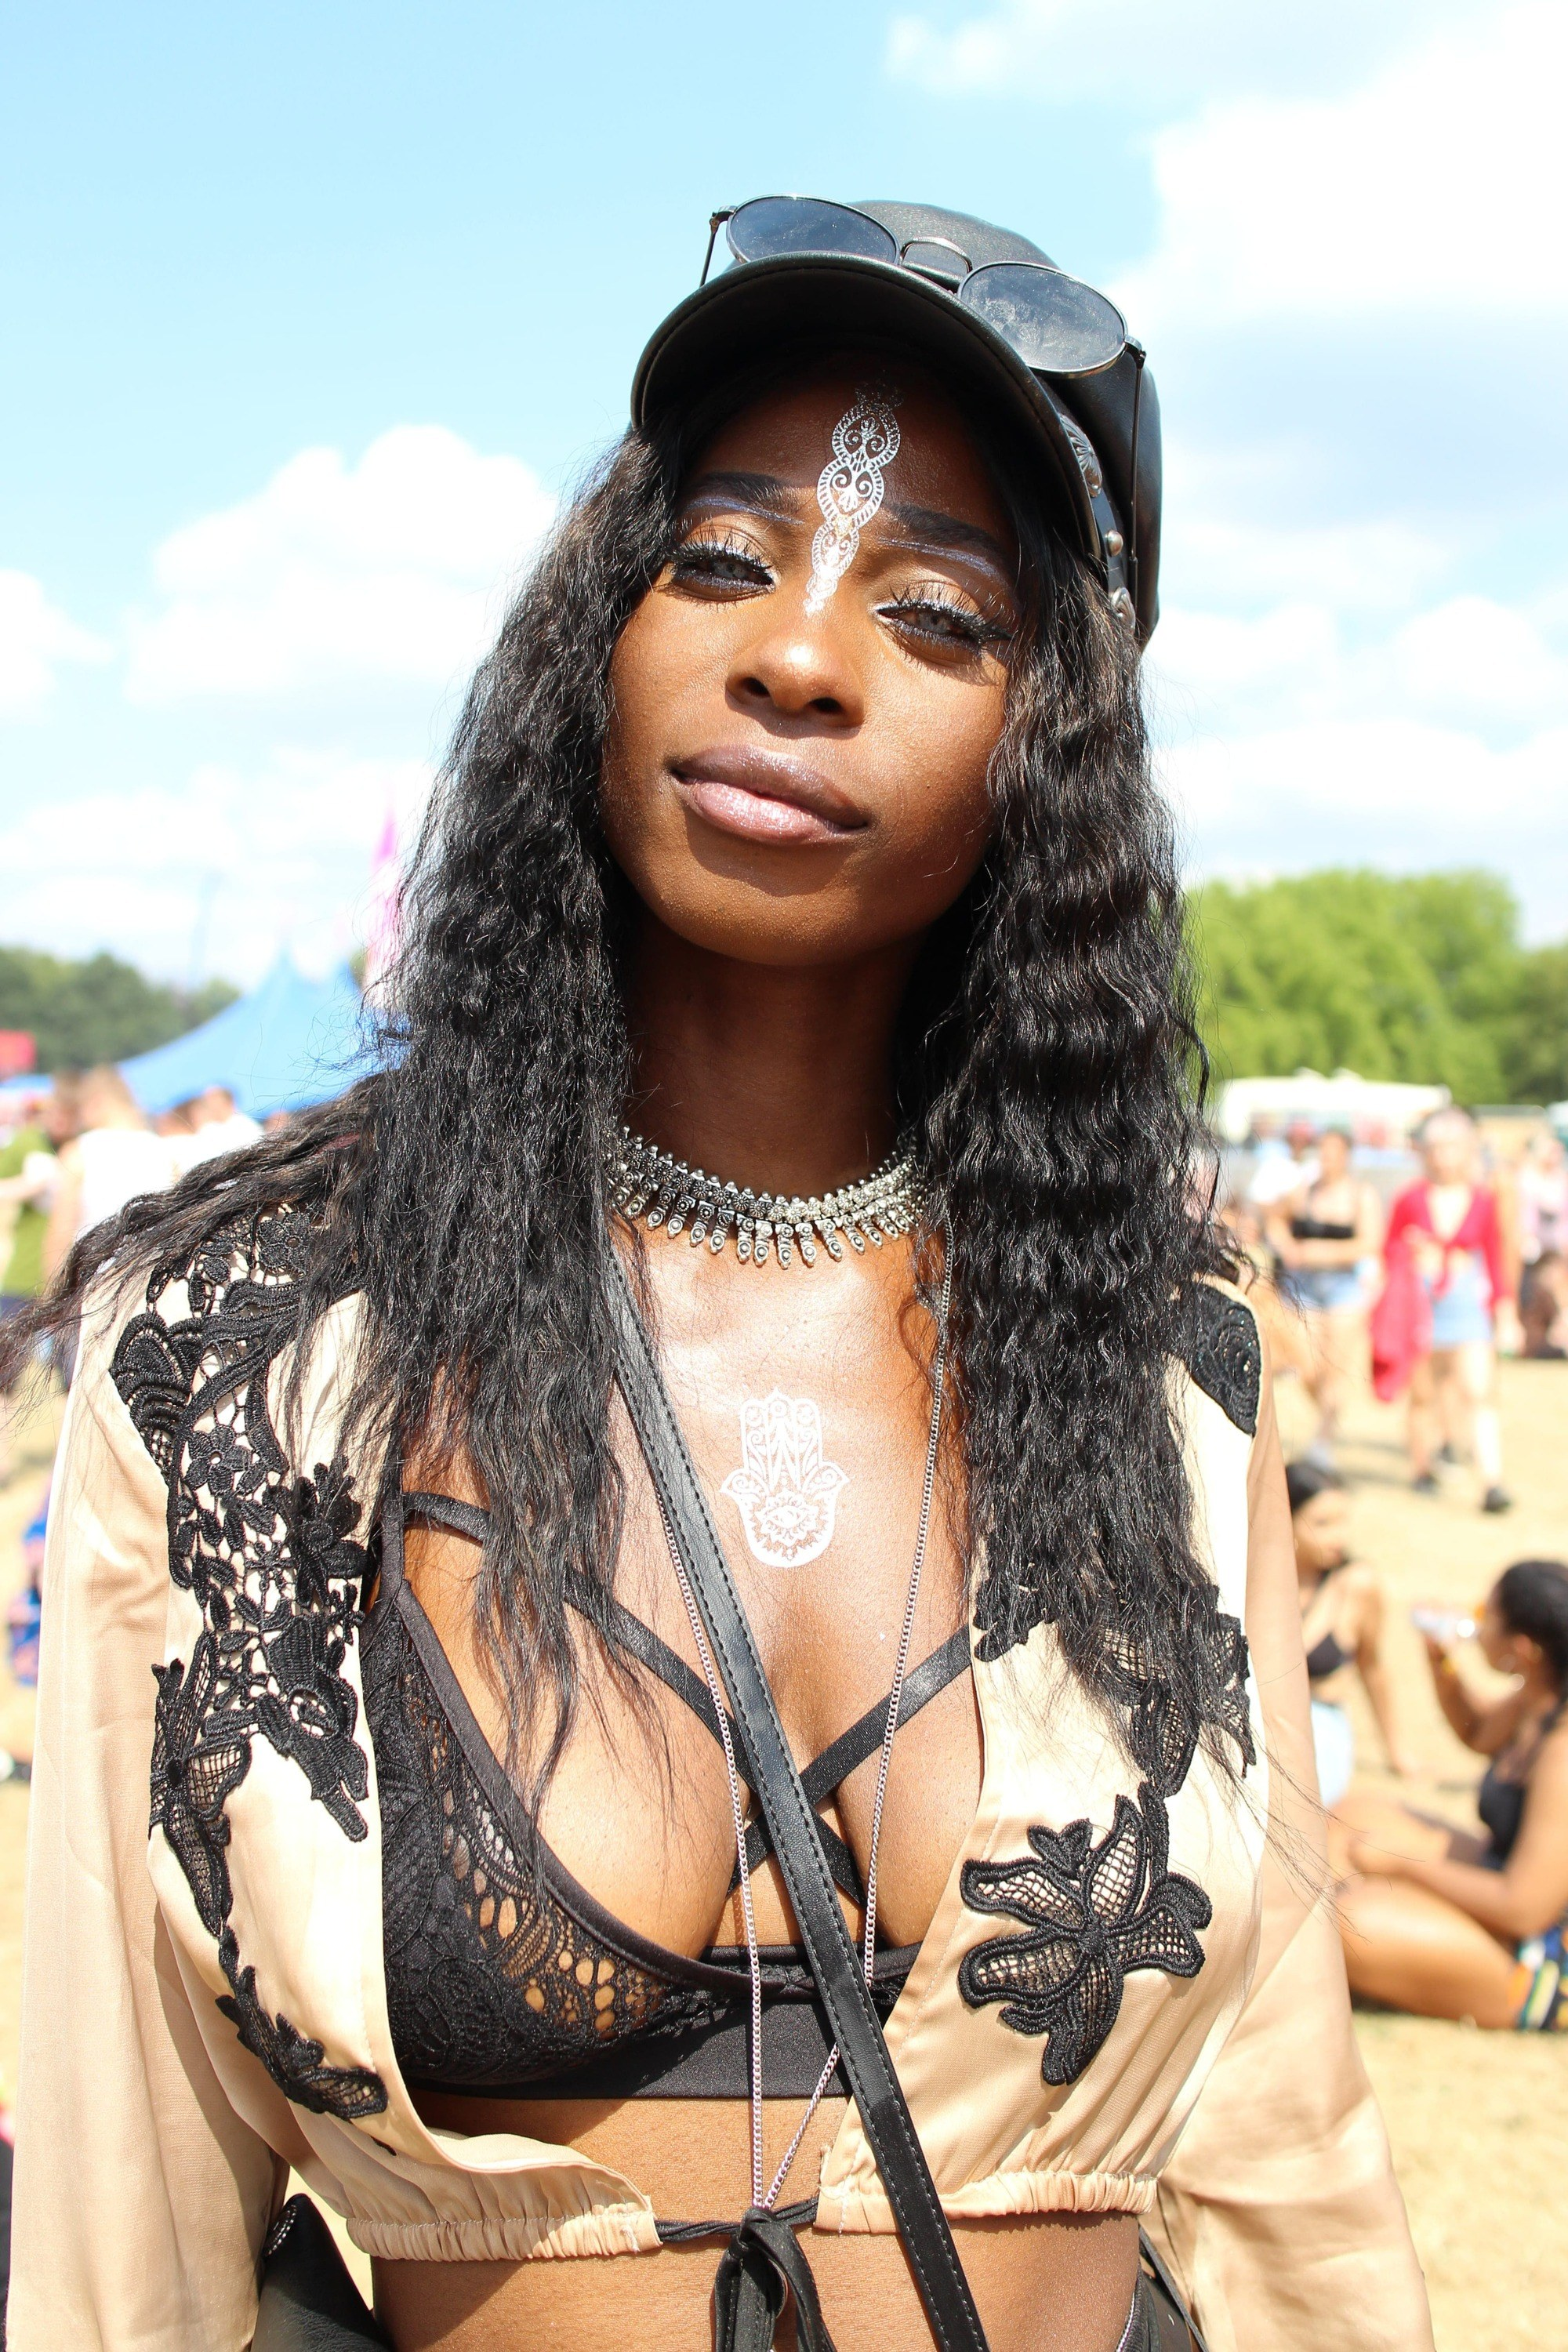 Festival hair accessories: Woman with long dark brown wavy hair styled with a black cap with sunglasses sitting on top